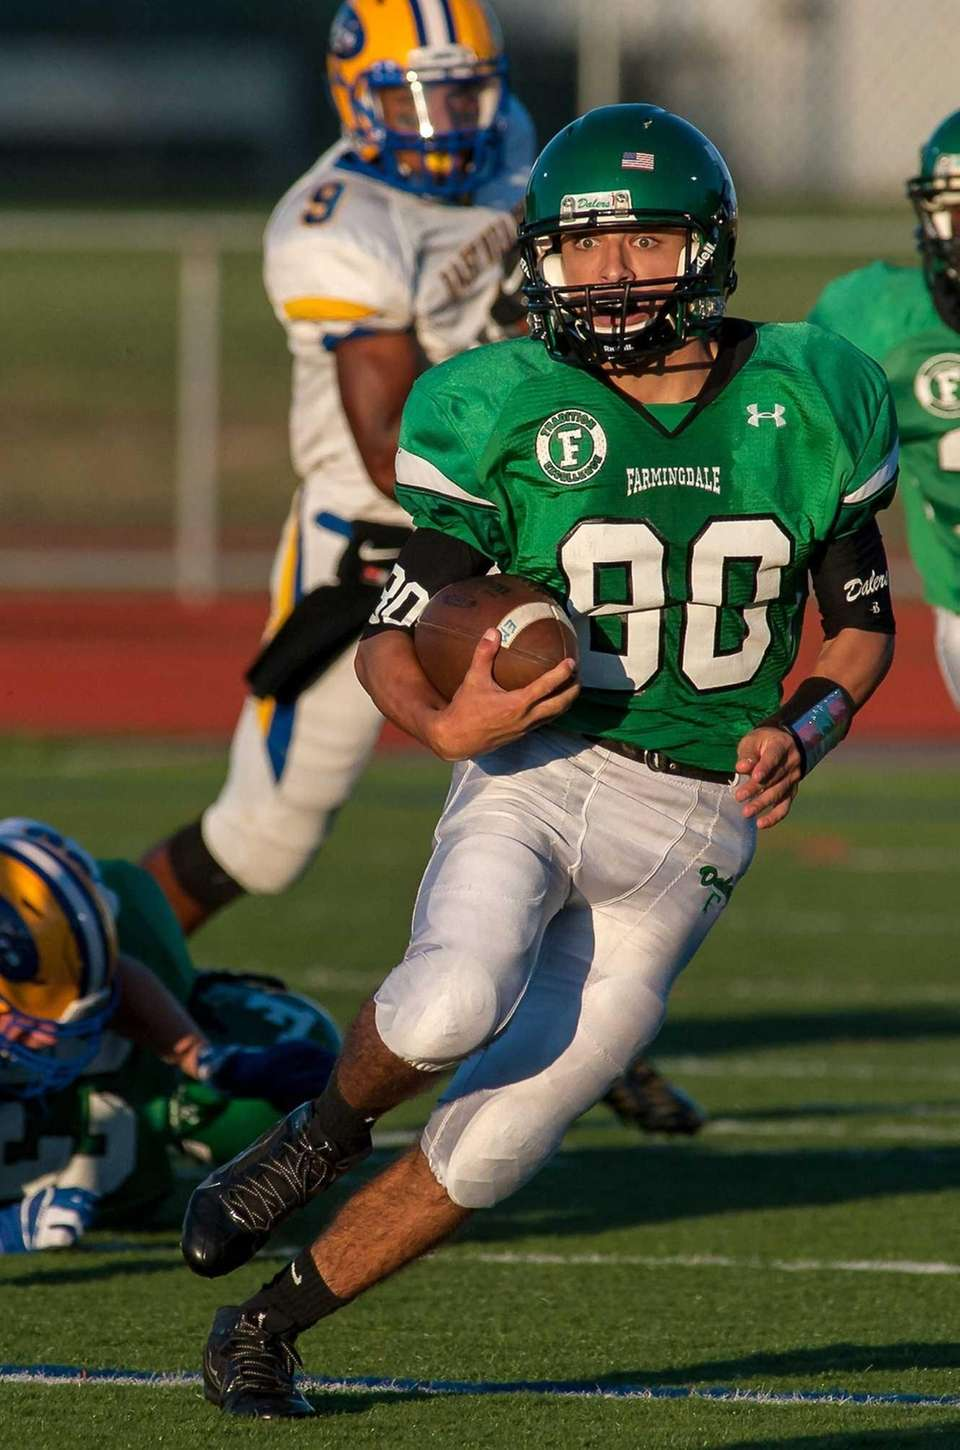 Farmindale's Frank Tocchia runs with the ball during